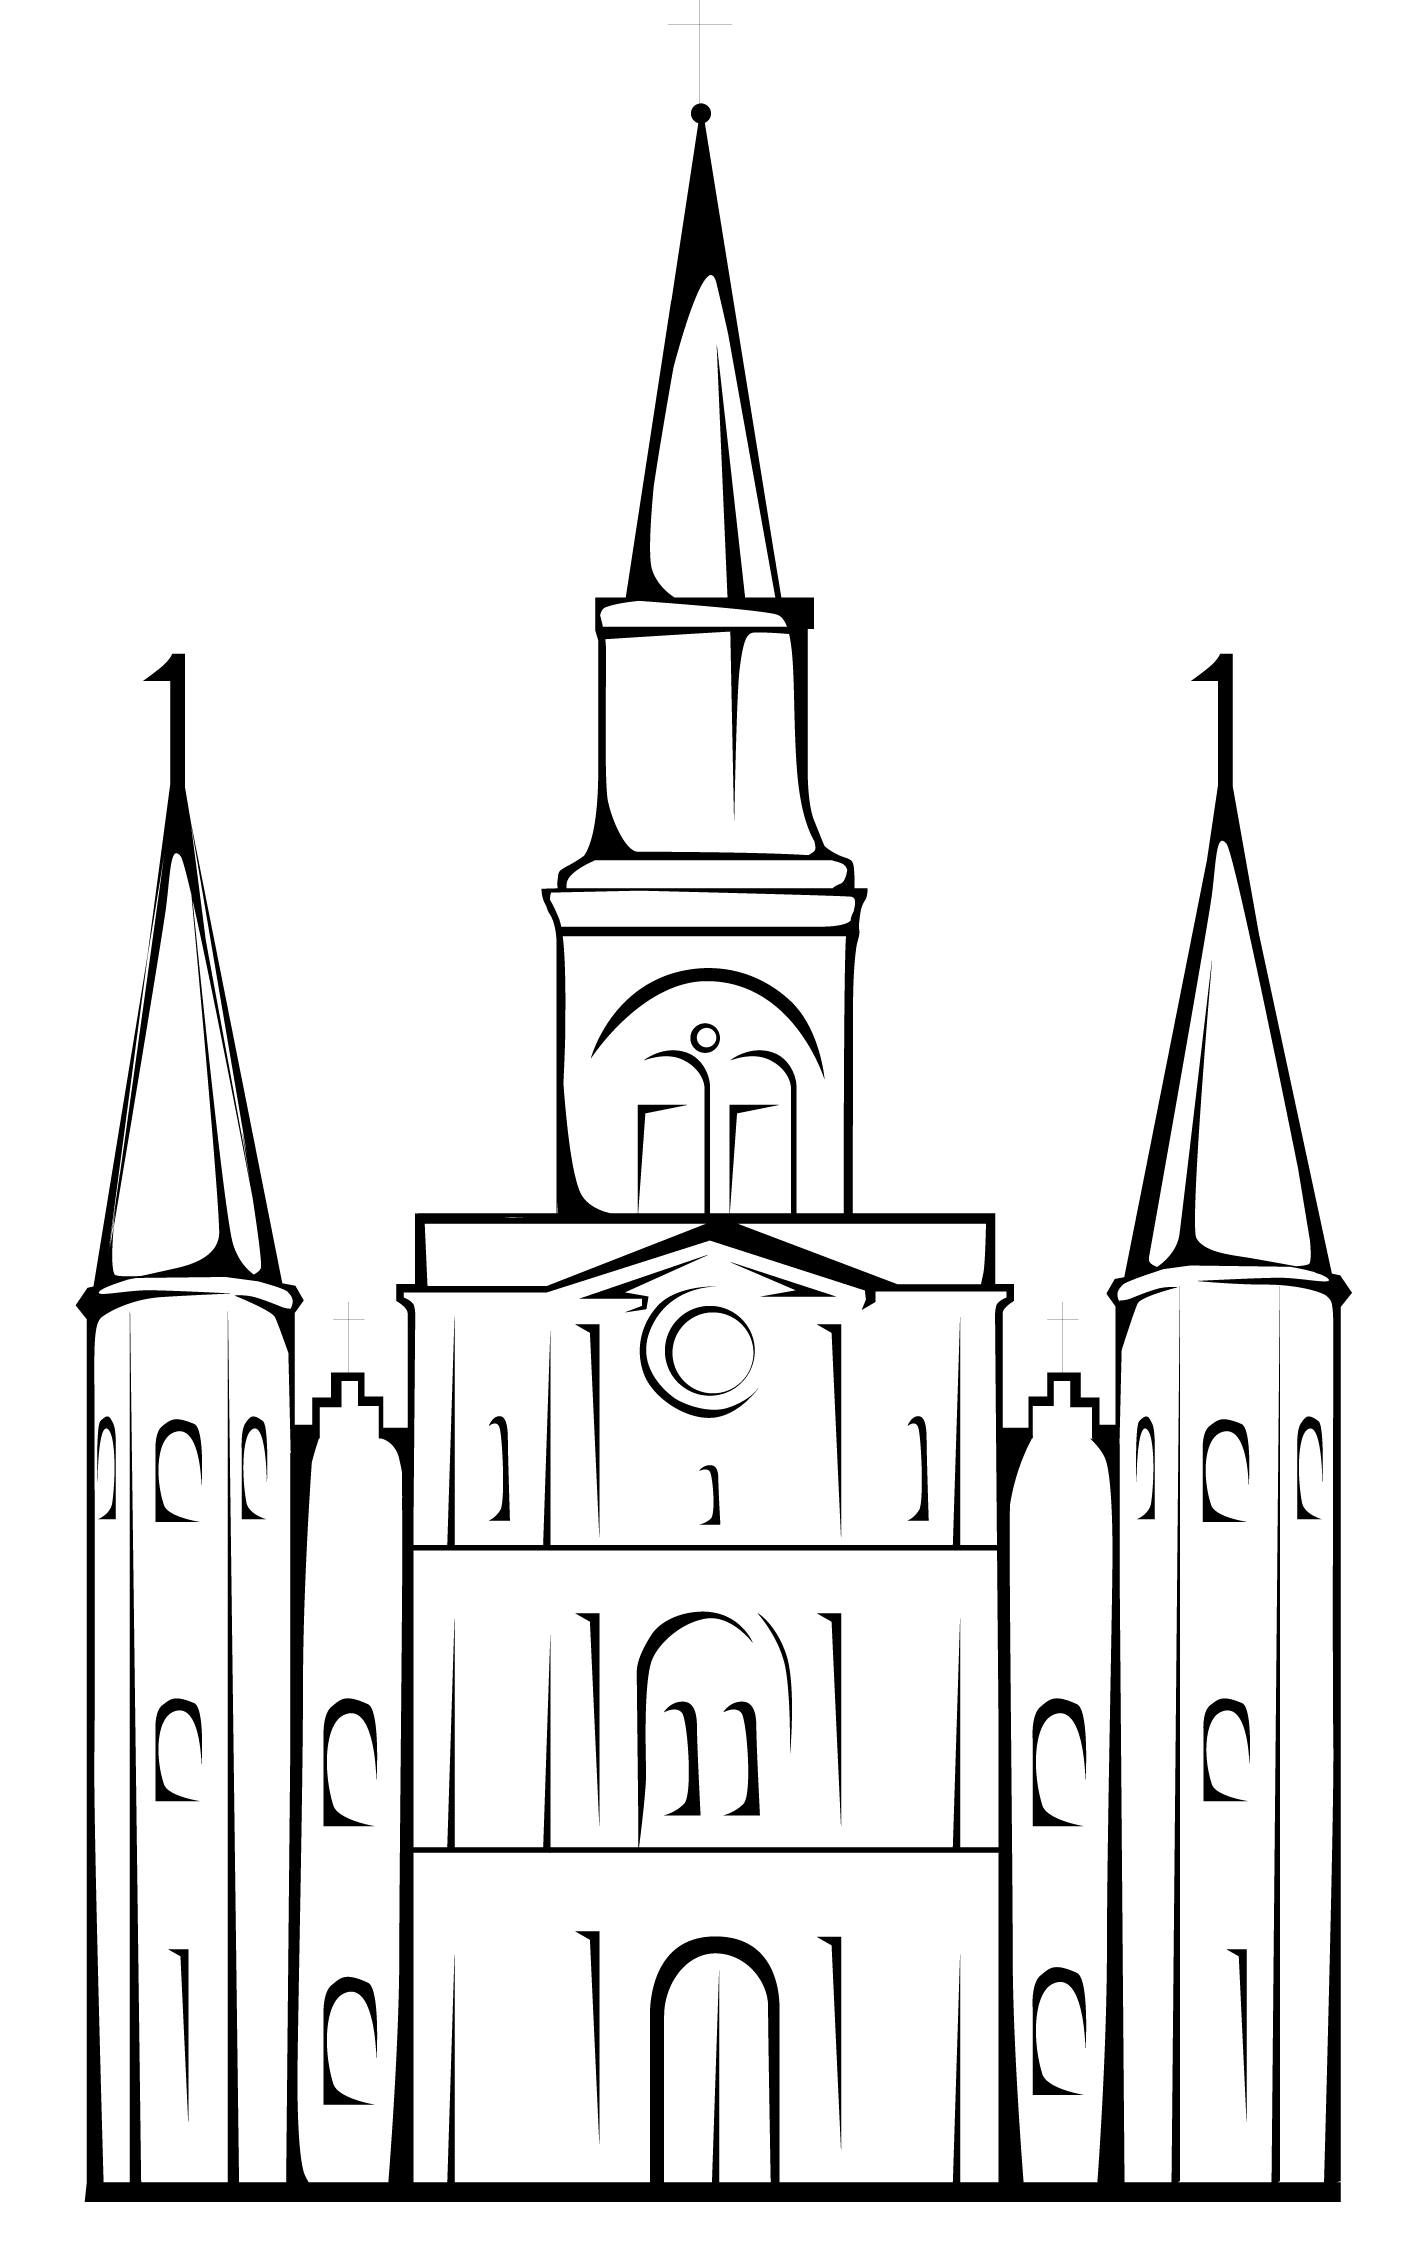 St Louis Cathedral Outline